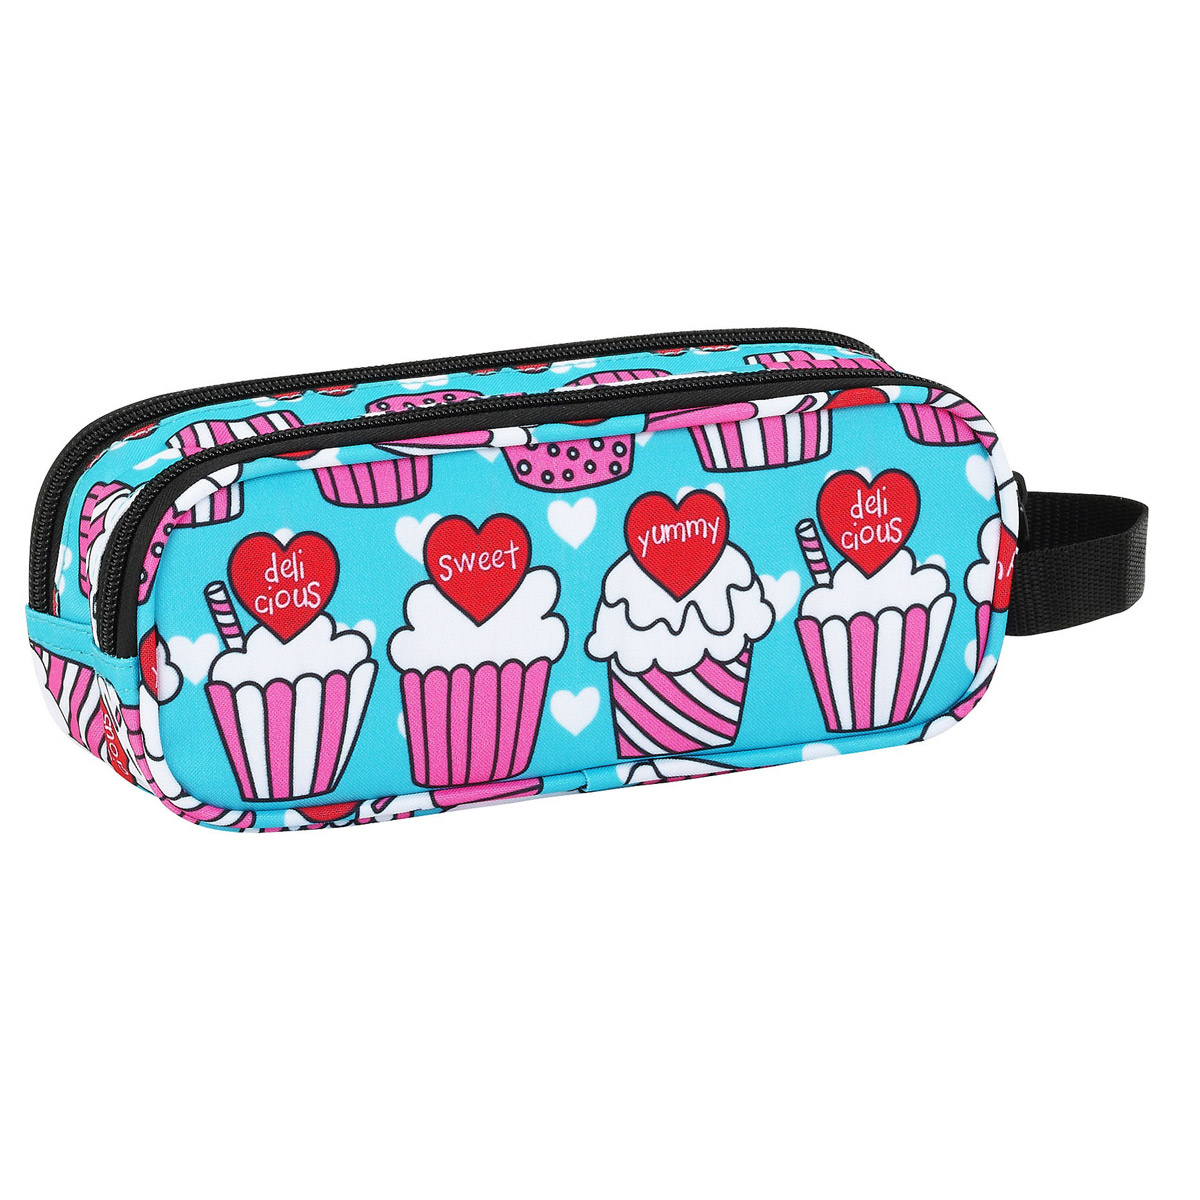 Blackfit8 Yummy Cupcake Double Pencil Case – image 2